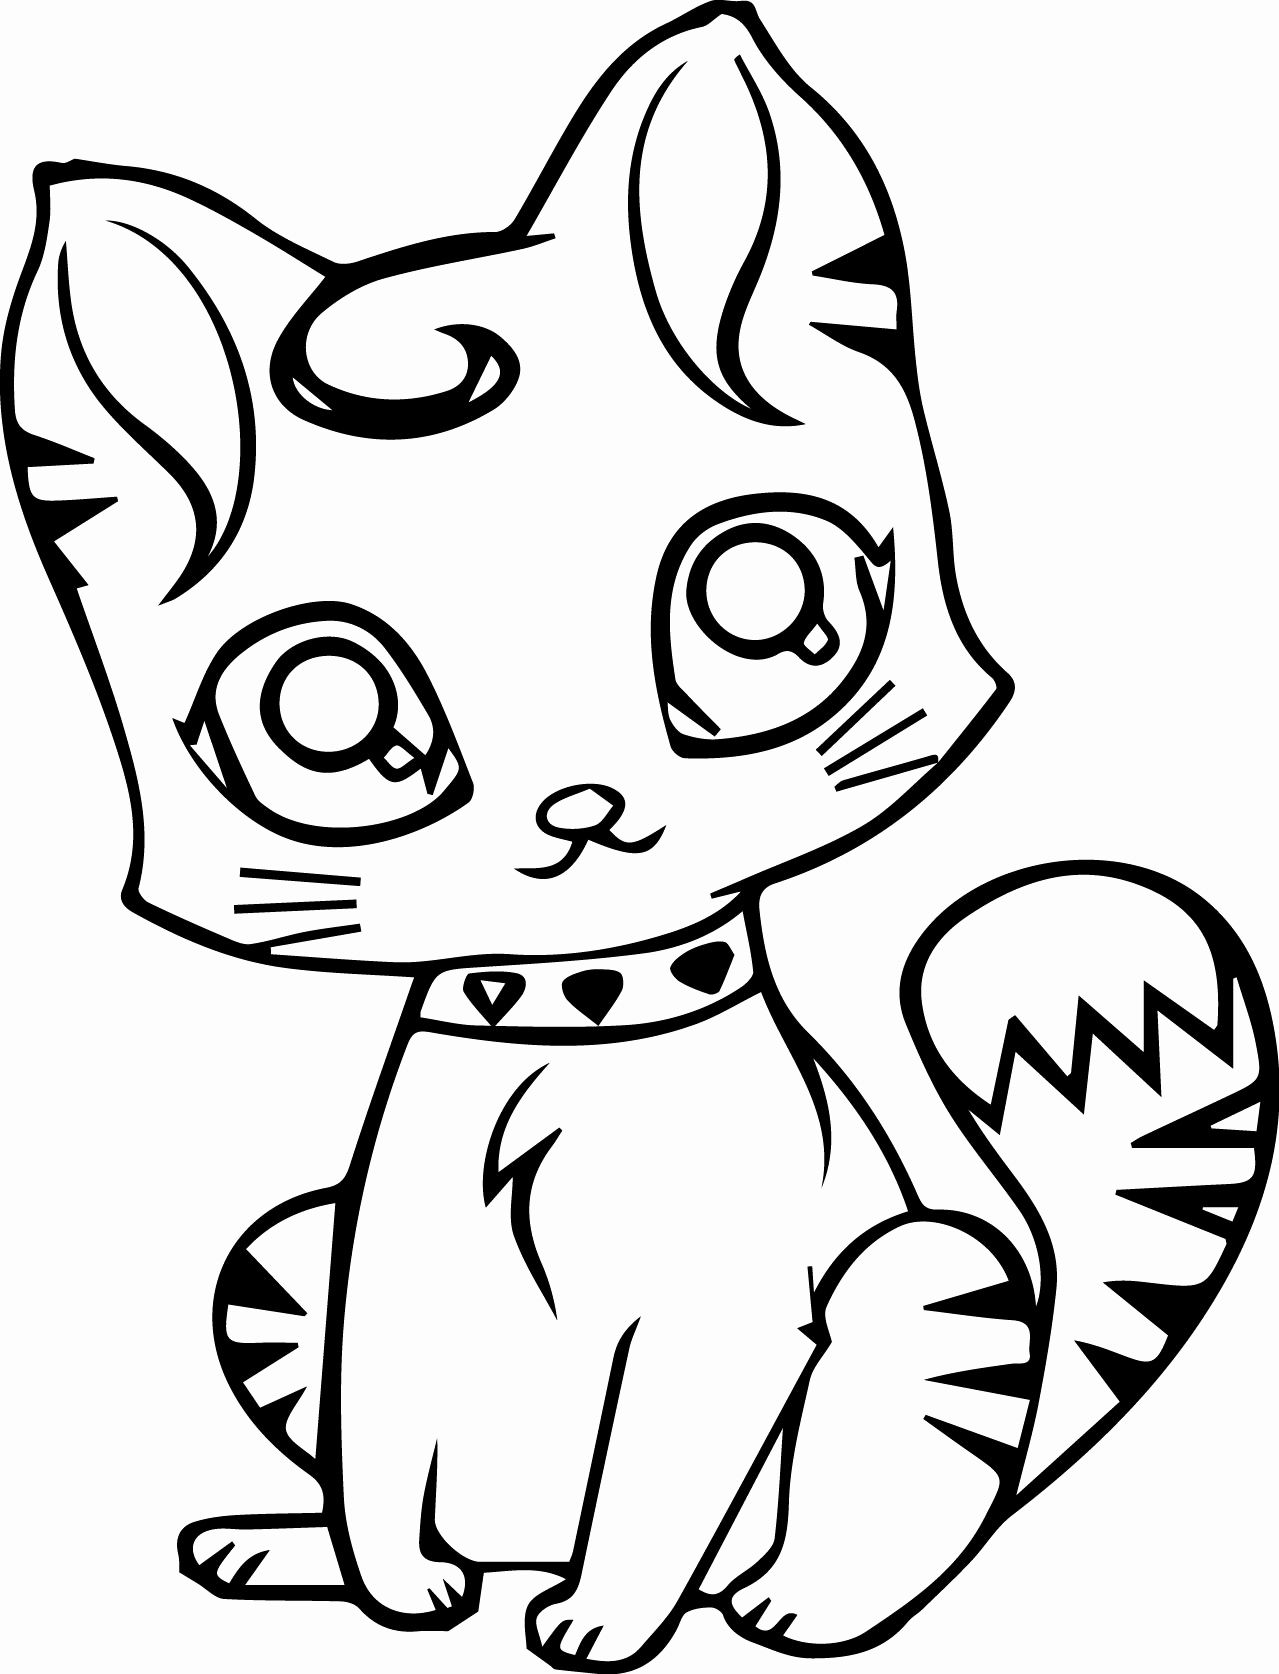 Coloring Pages For Kids Cat Amp Dog Kitty Coloring Hello Kitty Colouring Pages Cat Coloring Page